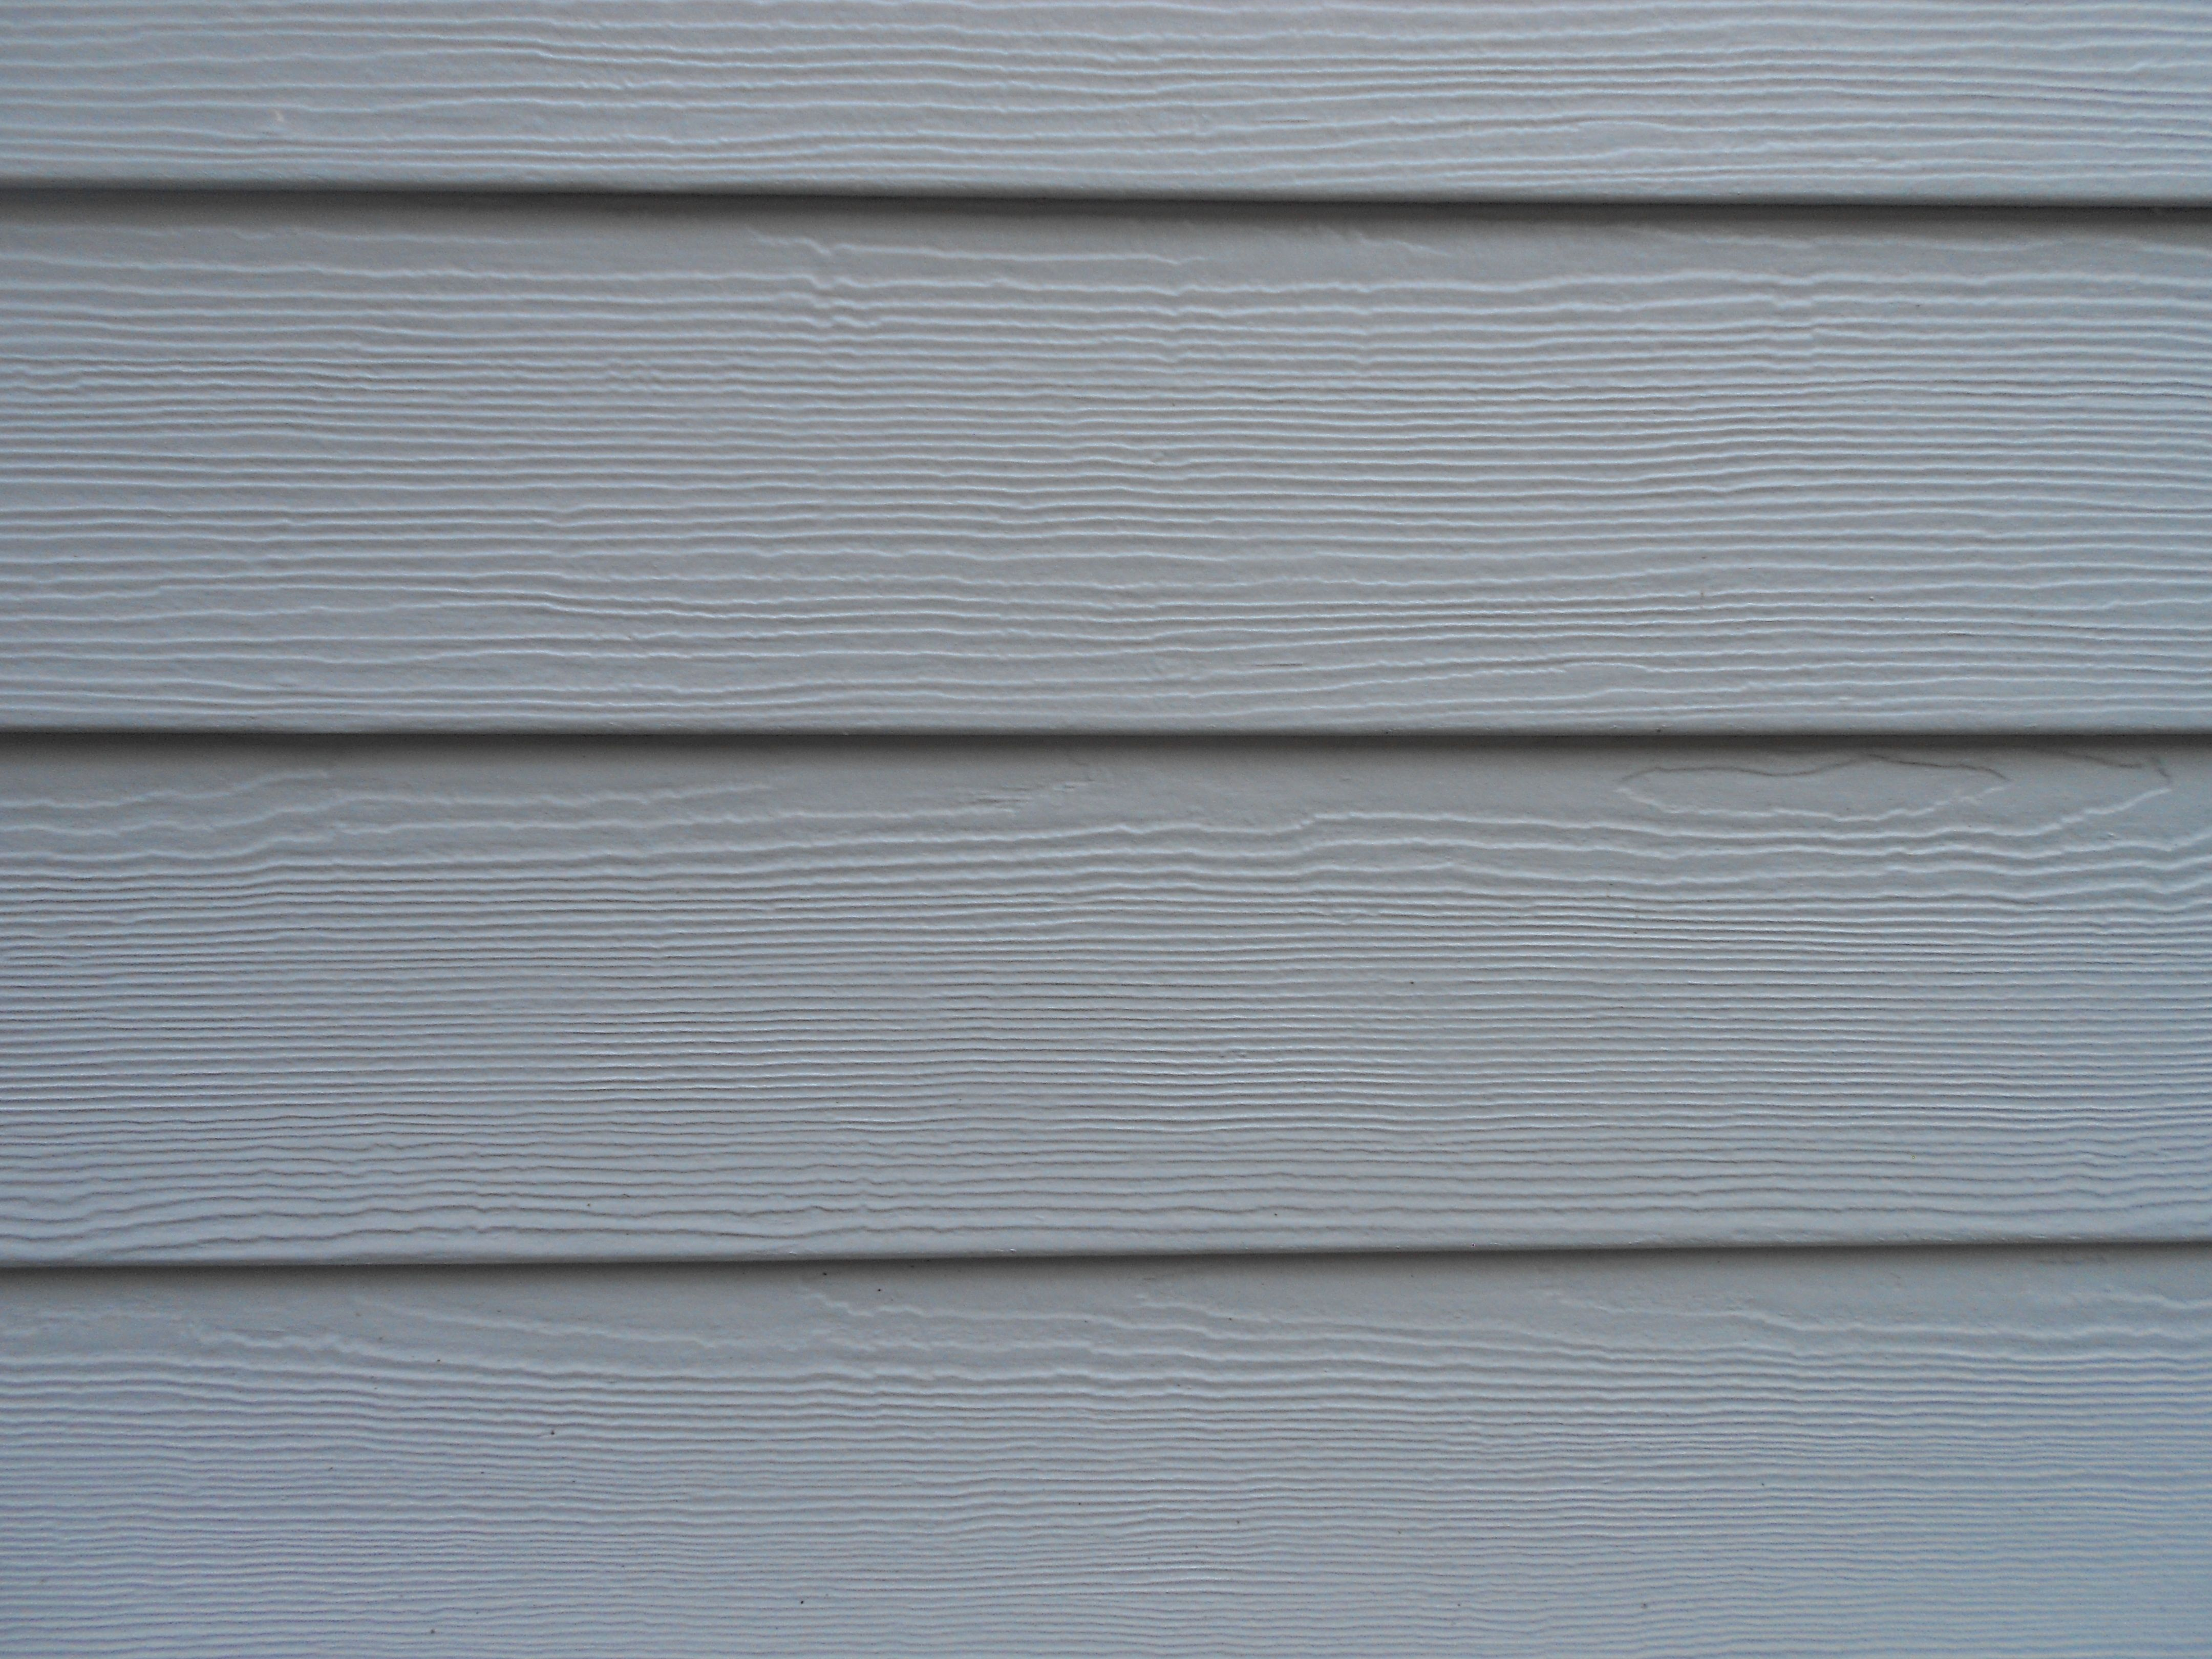 Siding Express James Hardie Siding Hardie James Hardie